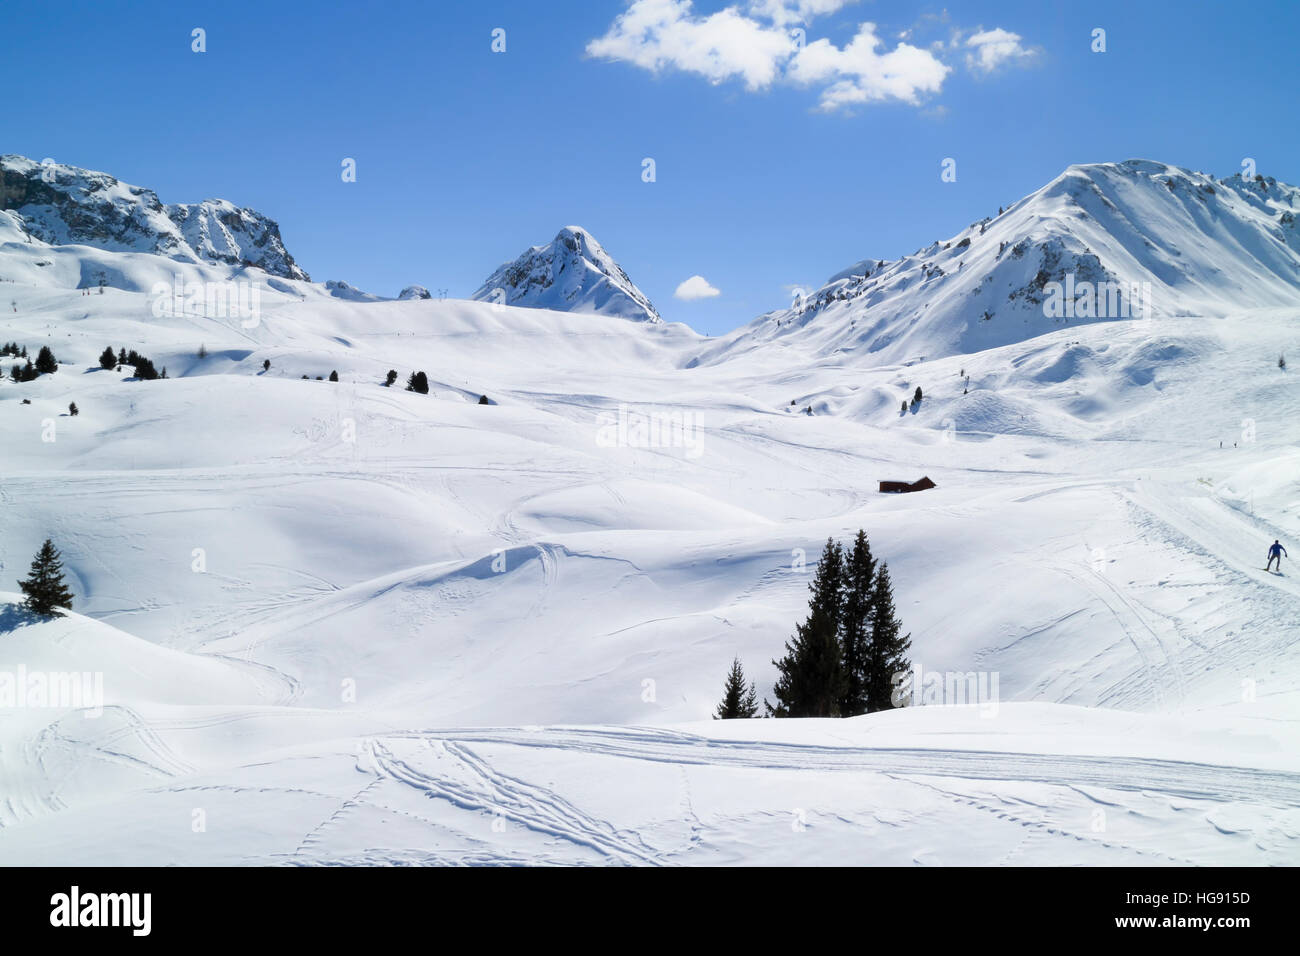 Ski pistes crossing alpine valley and rugged mountains, Paradiski, Plagne, Alps, France - Stock Image